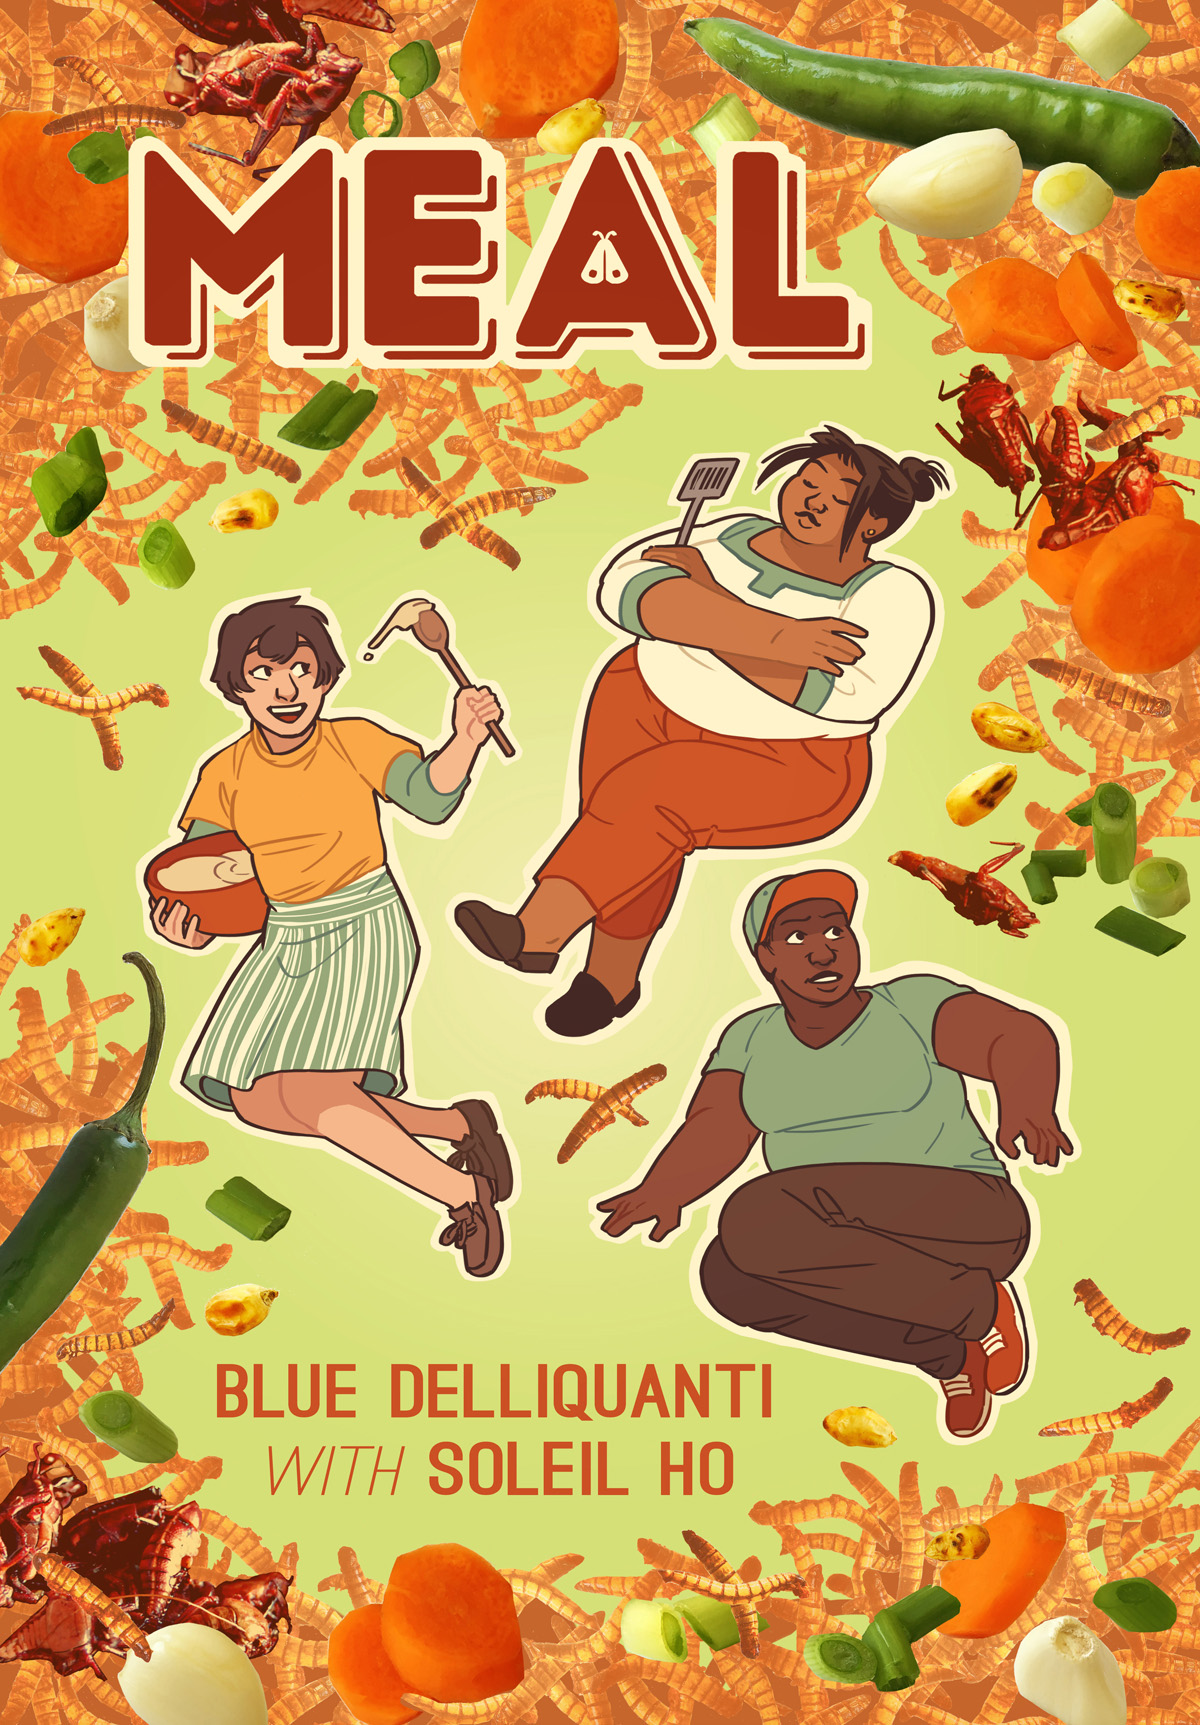 MEAL by Blue Delliquanti with Soleil Ho (Iron Circus Comics, October 2018)